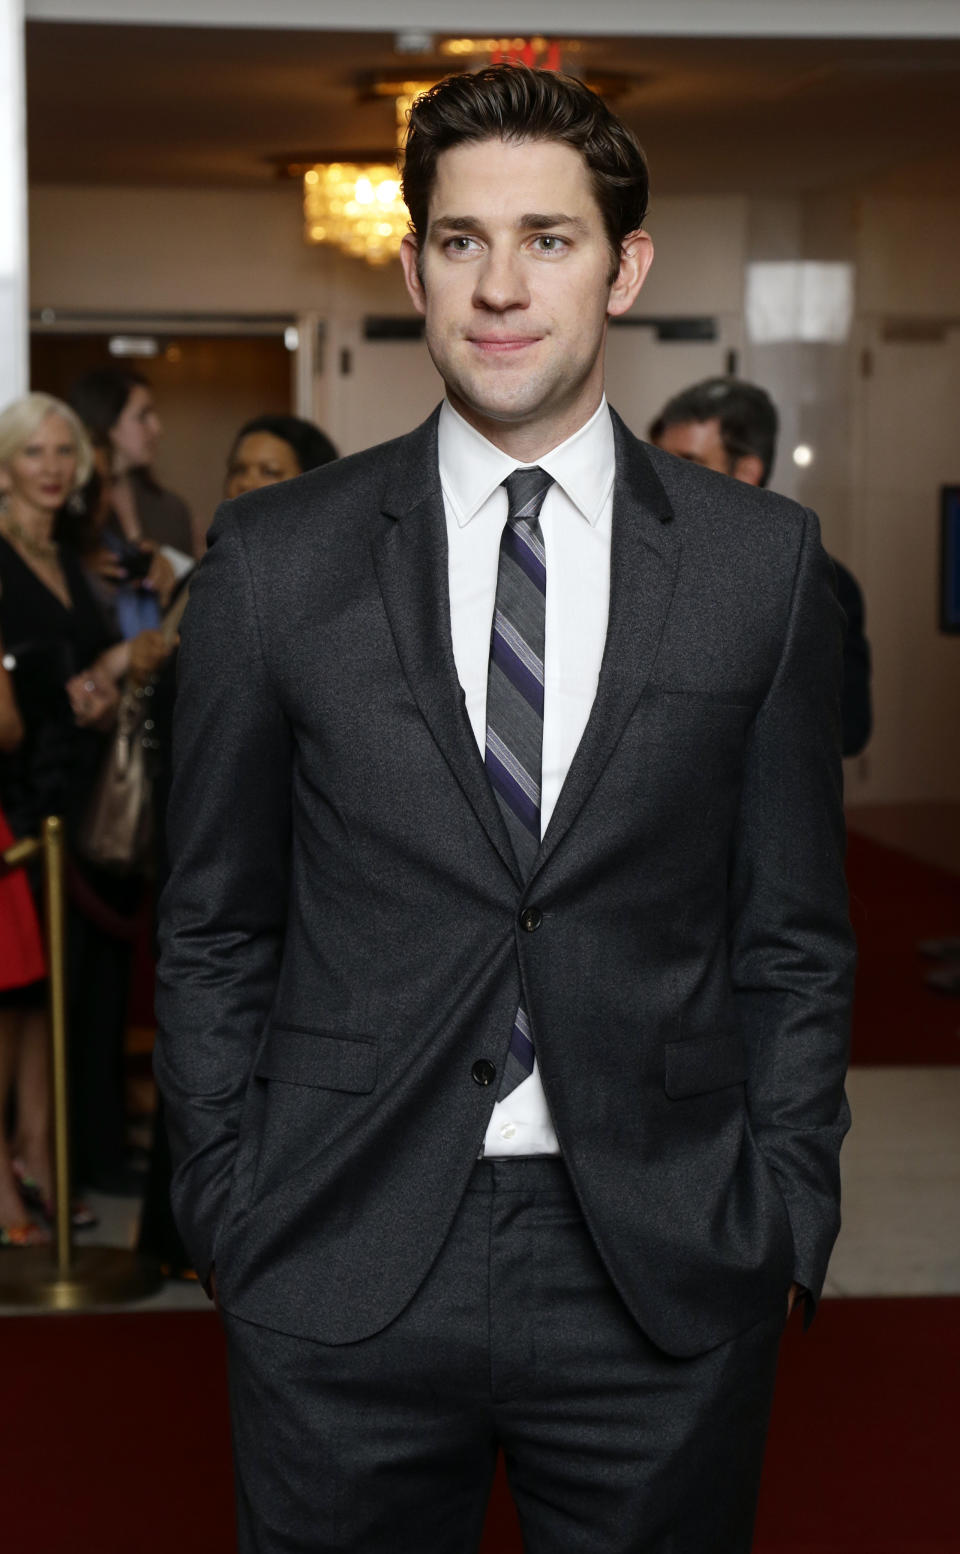 Actor John Krasinski poses for photographers on the red carpet before entertainer Ellen DeGeneres receives the 15th annual Mark Twain Prize for American Humor at the Kennedy Center, Monday, Oct. 22, 2012, in Washington. (AP Photo/Alex Brandon)